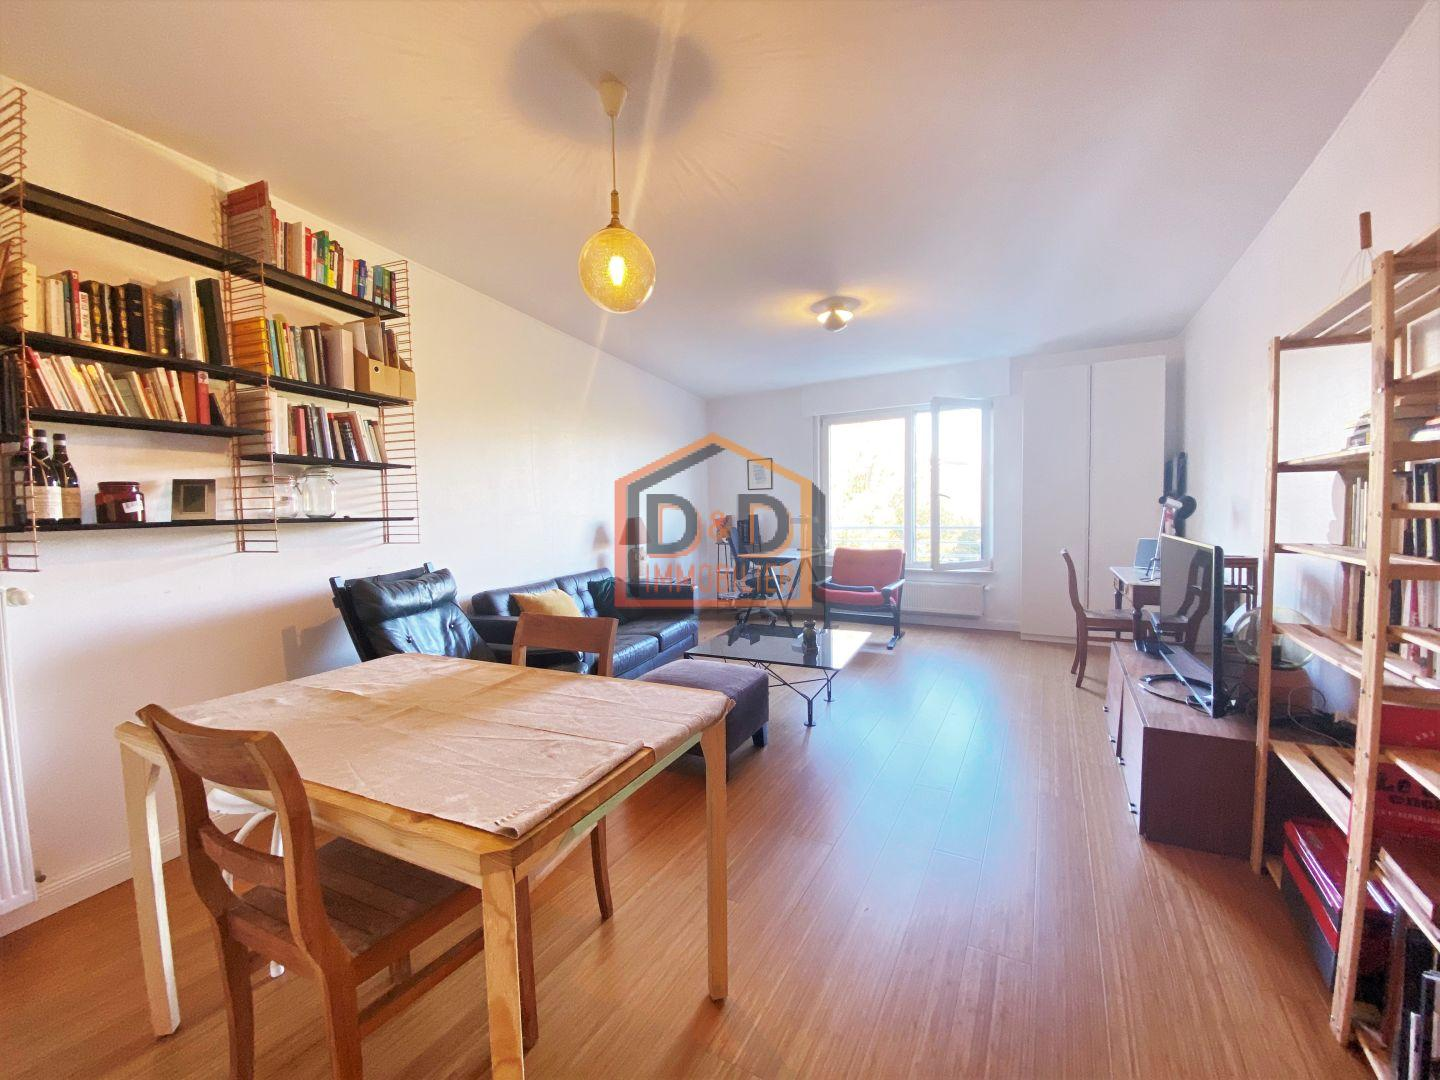 Appartement à Luxembourg-Hollerich, 59 m², 1 chambre, 1 400 €/mois